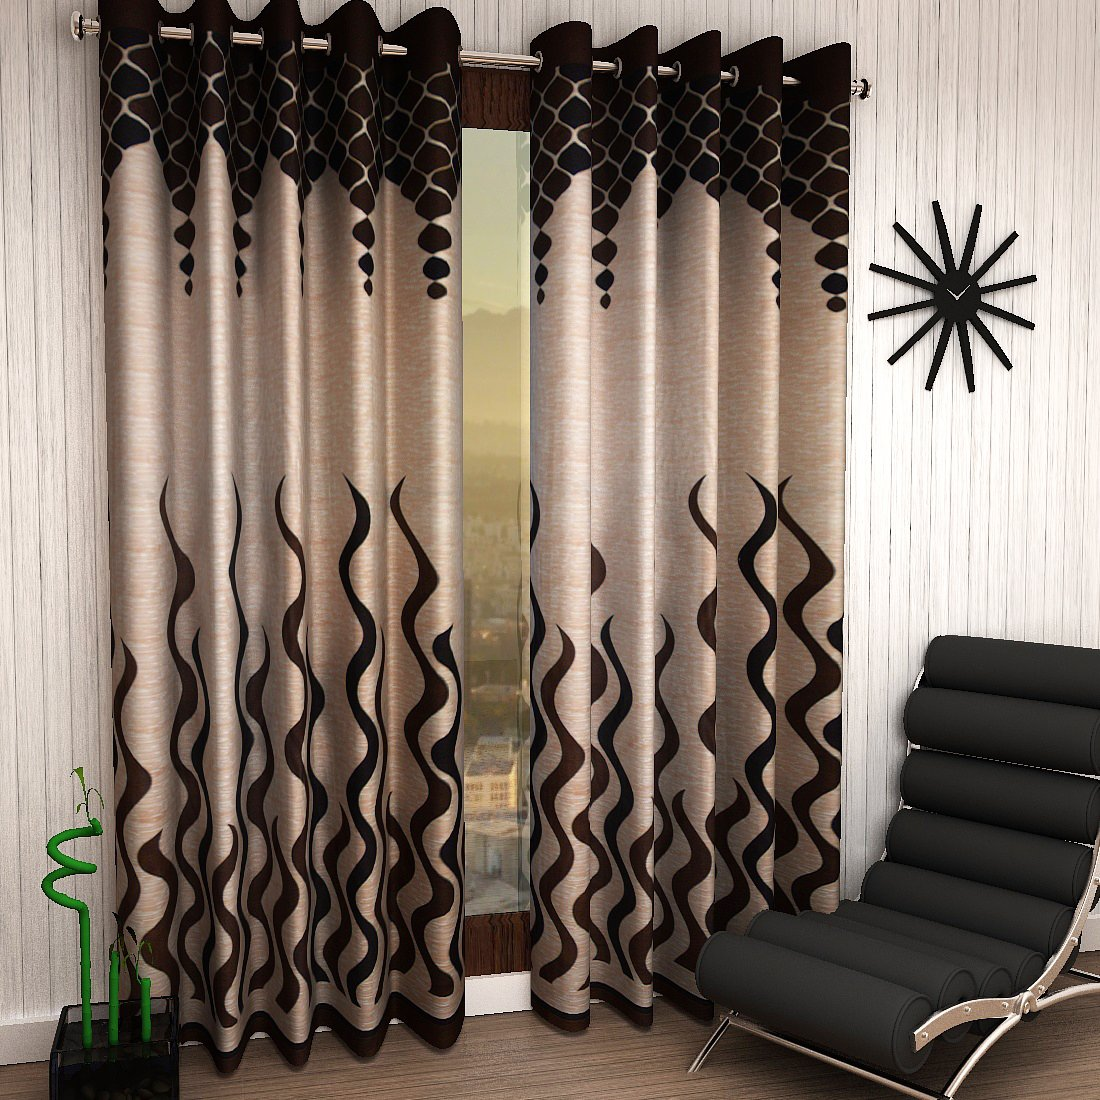 Home Sizzler 2 Piece Eyelet Polyester Door Curtain - 7ft (84